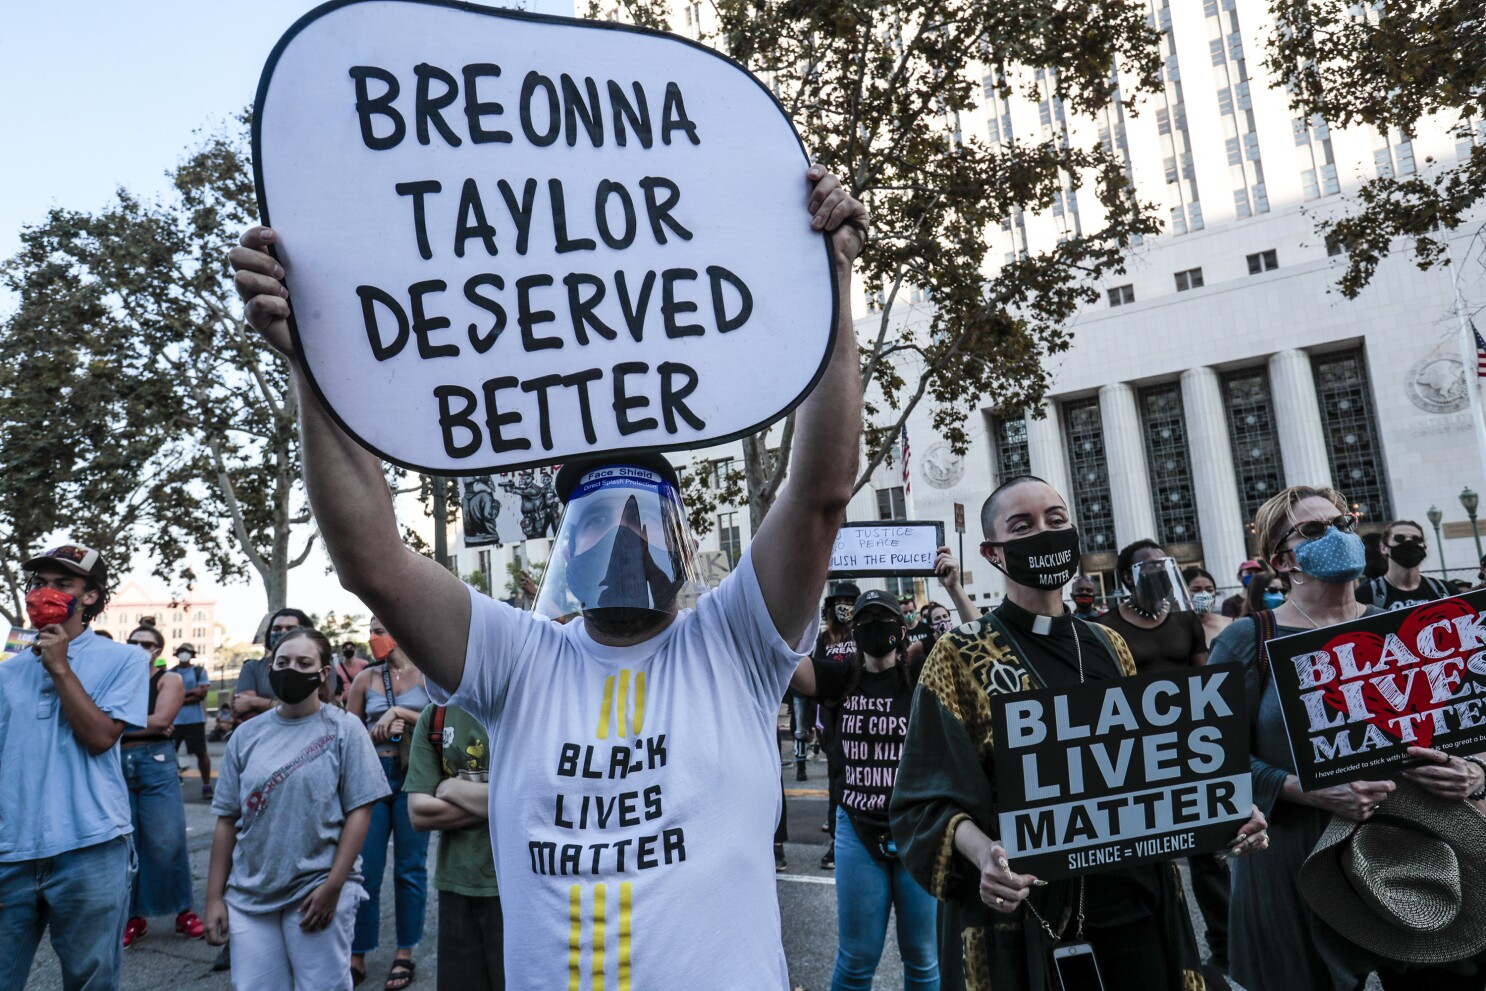 Breonna Taylor S Death A Timeline Of Events Los Angeles Times